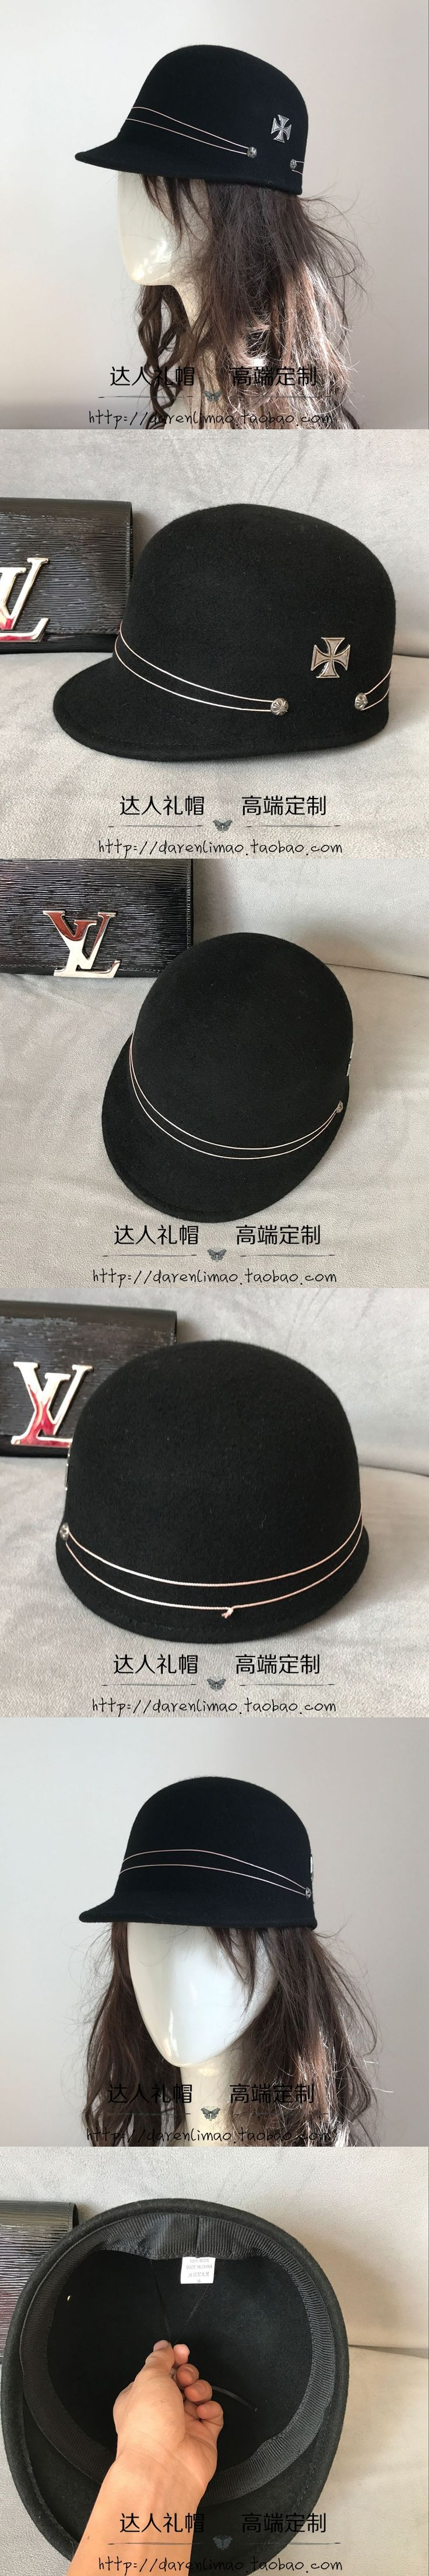 Crow heart shuangkou knights of baseball caps hats for men and women personality homburg leisure cool short eaves equestrian